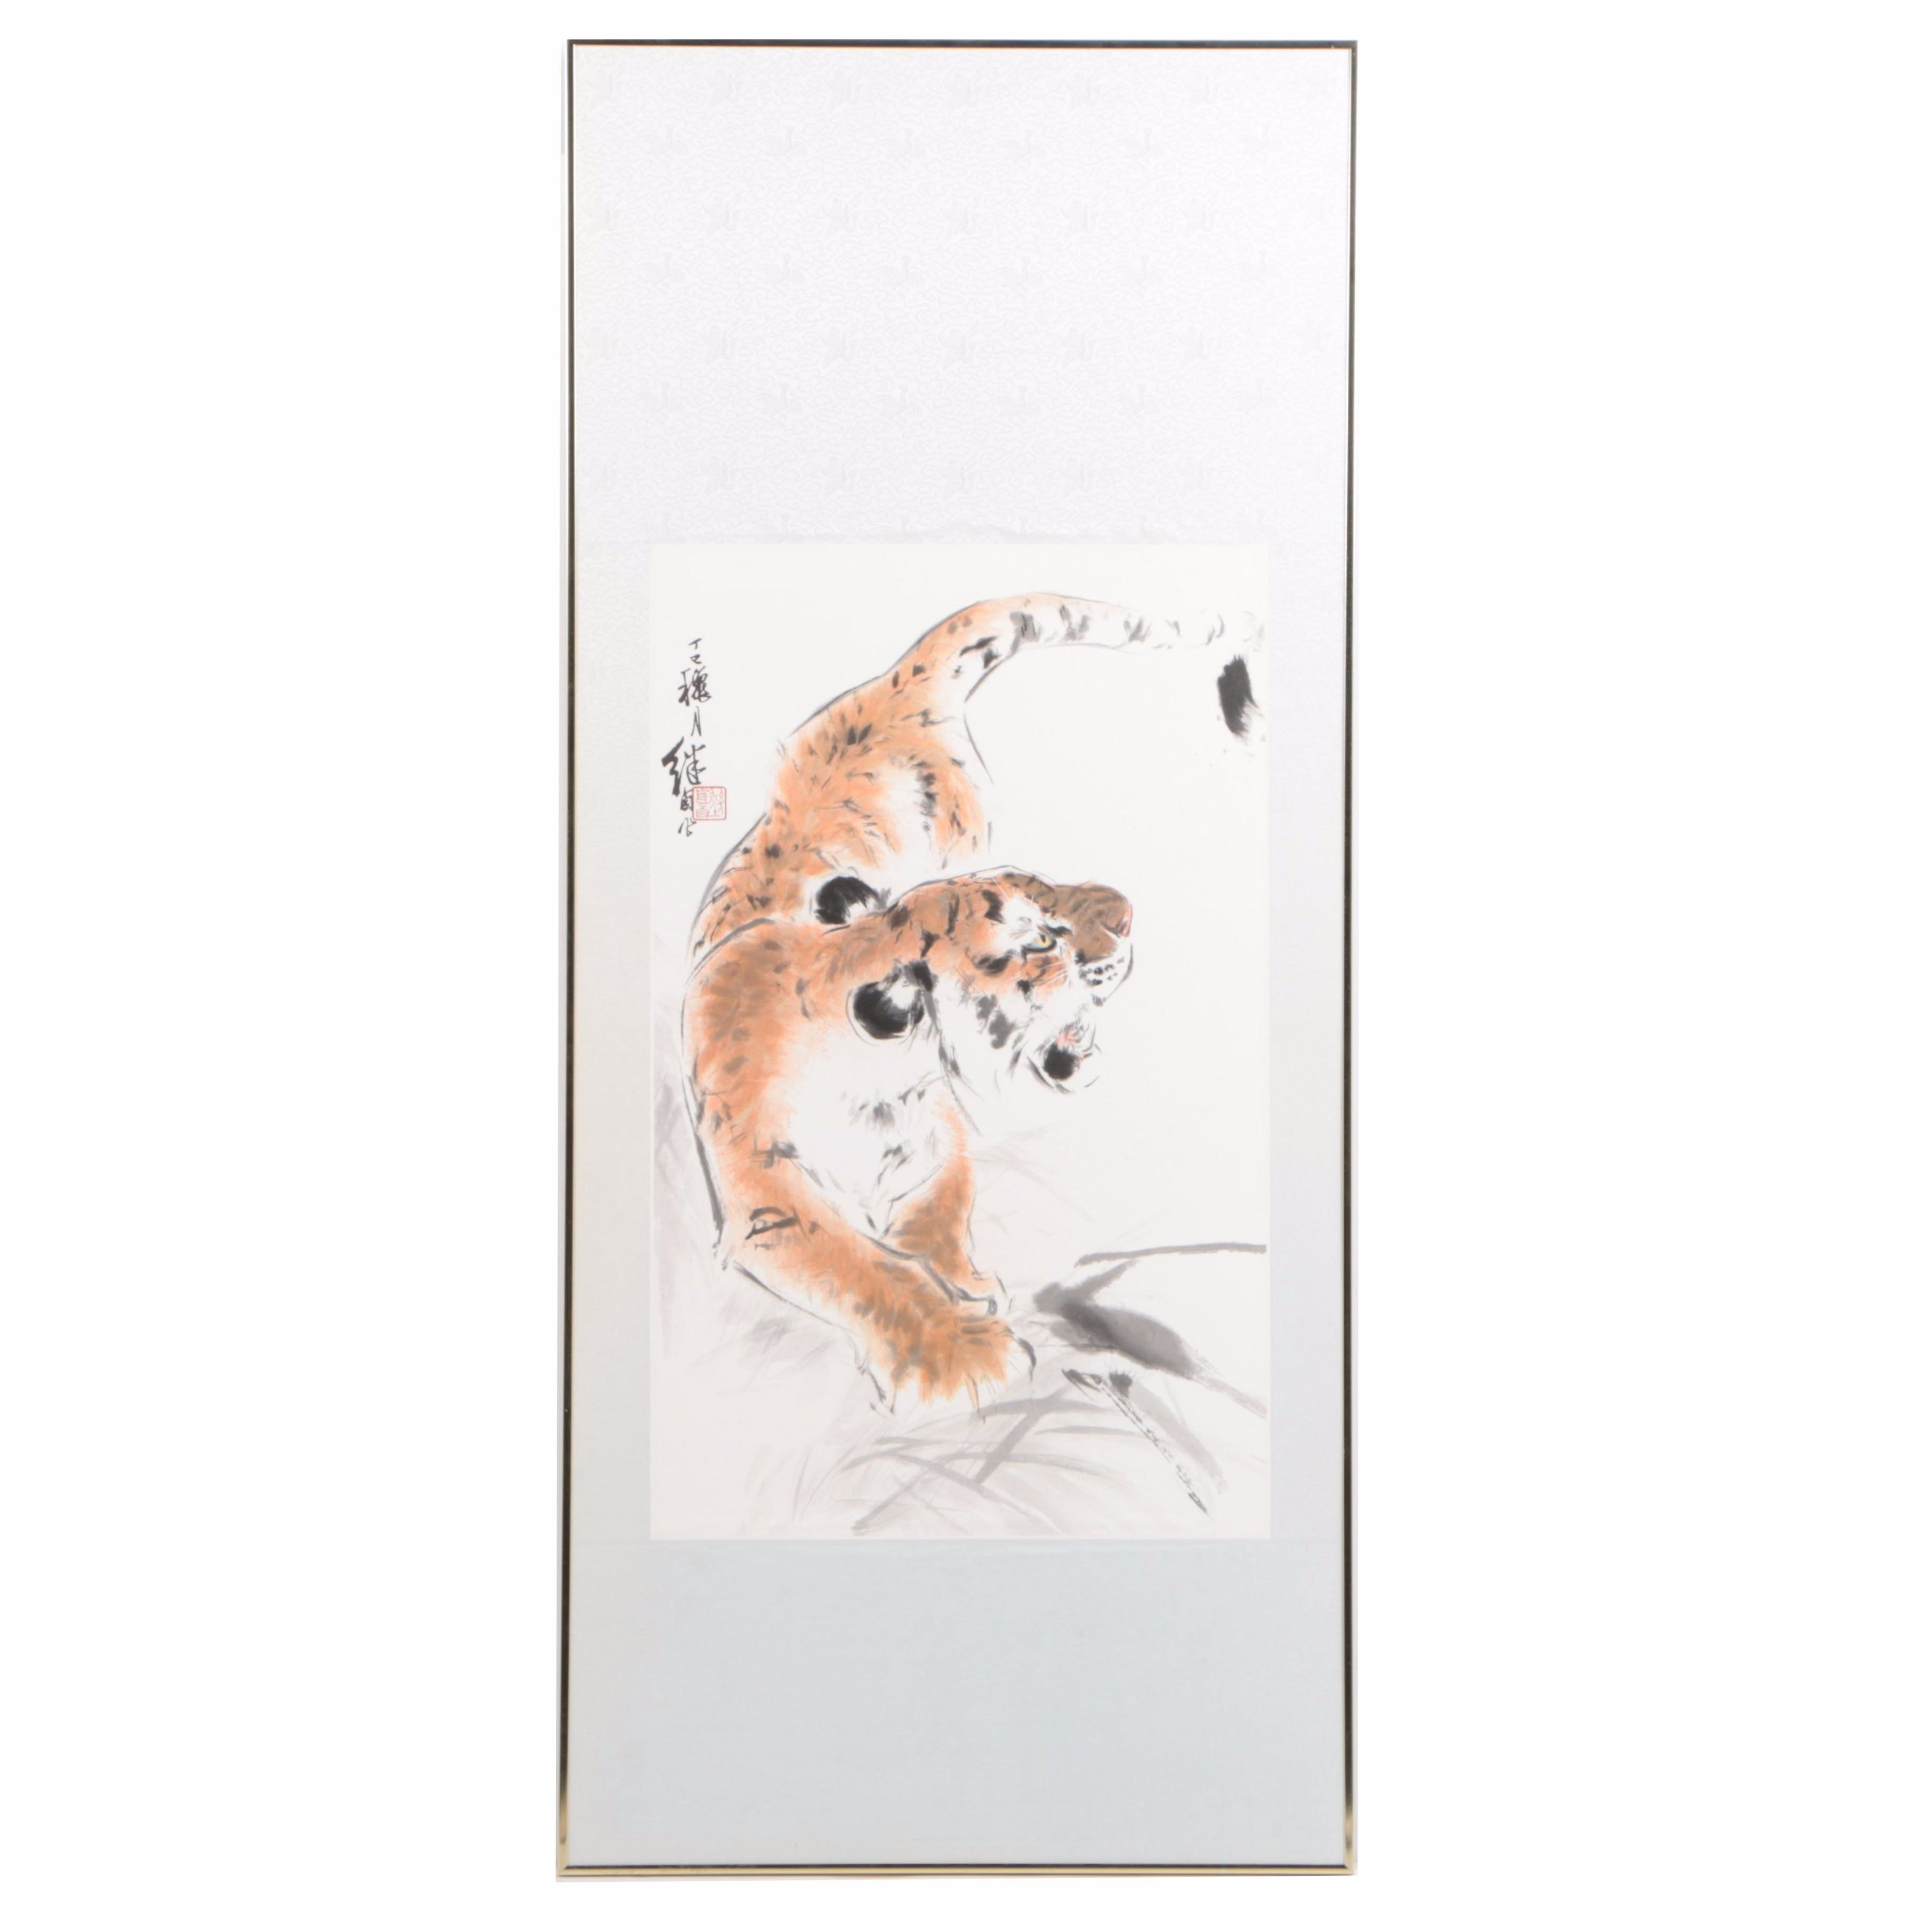 East Asian Watercolor Painting on Paper of a Roaring Tiger